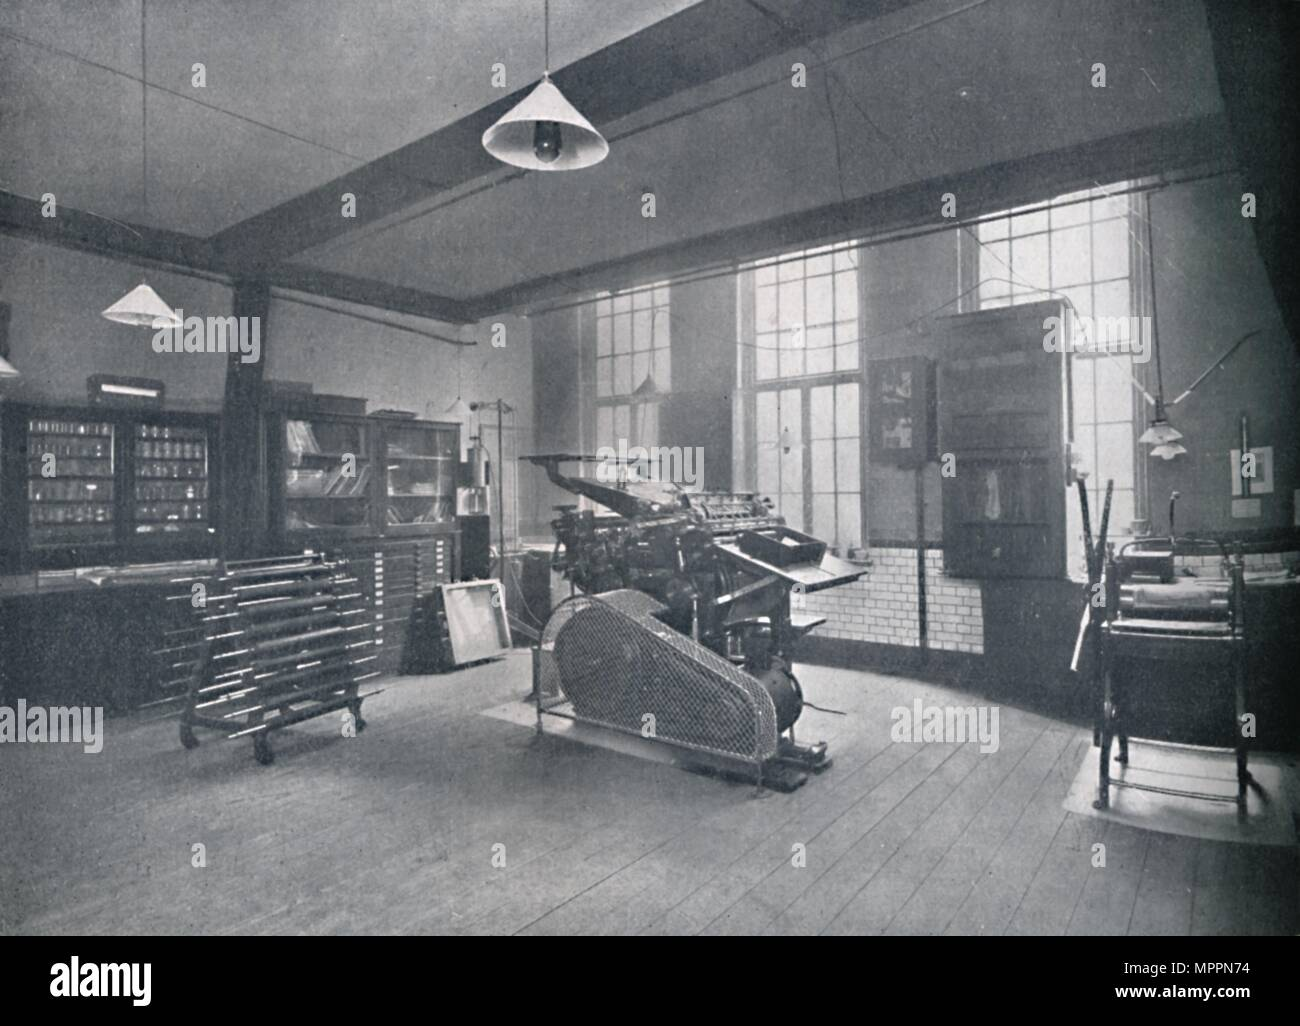 'St. Bride Foundation School. Offset Printing Room', 1917. Artist: Unknown. - Stock Image